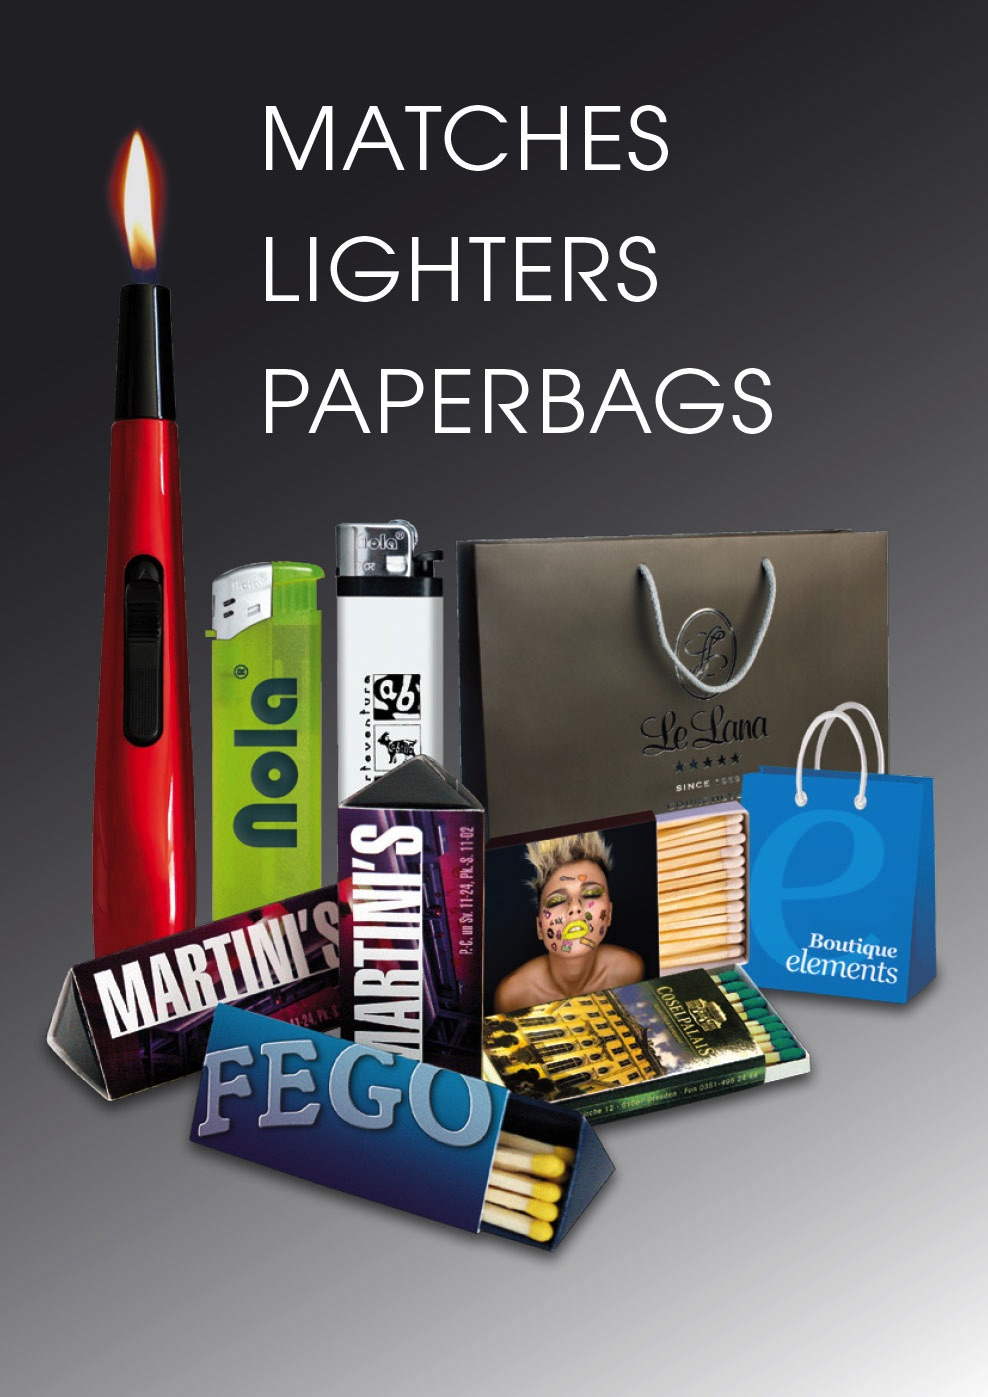 Katalog-Matches-Lighters-Paperbags-2018